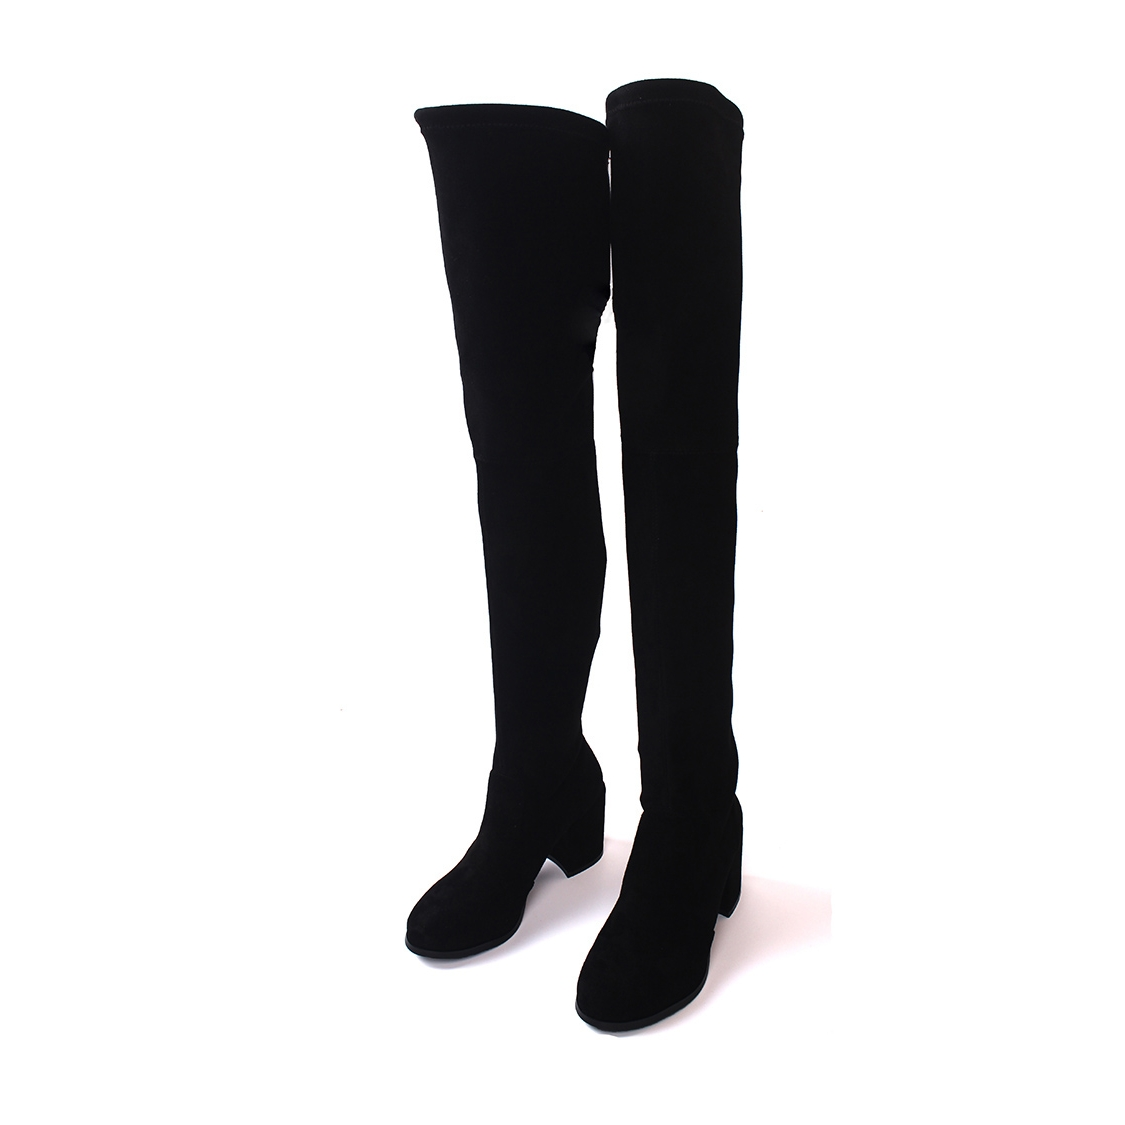 New Arrival Fashion Over The Knee Boots Women Casual Kid Suede Square Heels Round Toe Vintage Style Long Boots Shoes CN-A0000 hot sale new arrival black red full grain leather zip fashion women boots round toe square heels over the knee shoes woman ab888